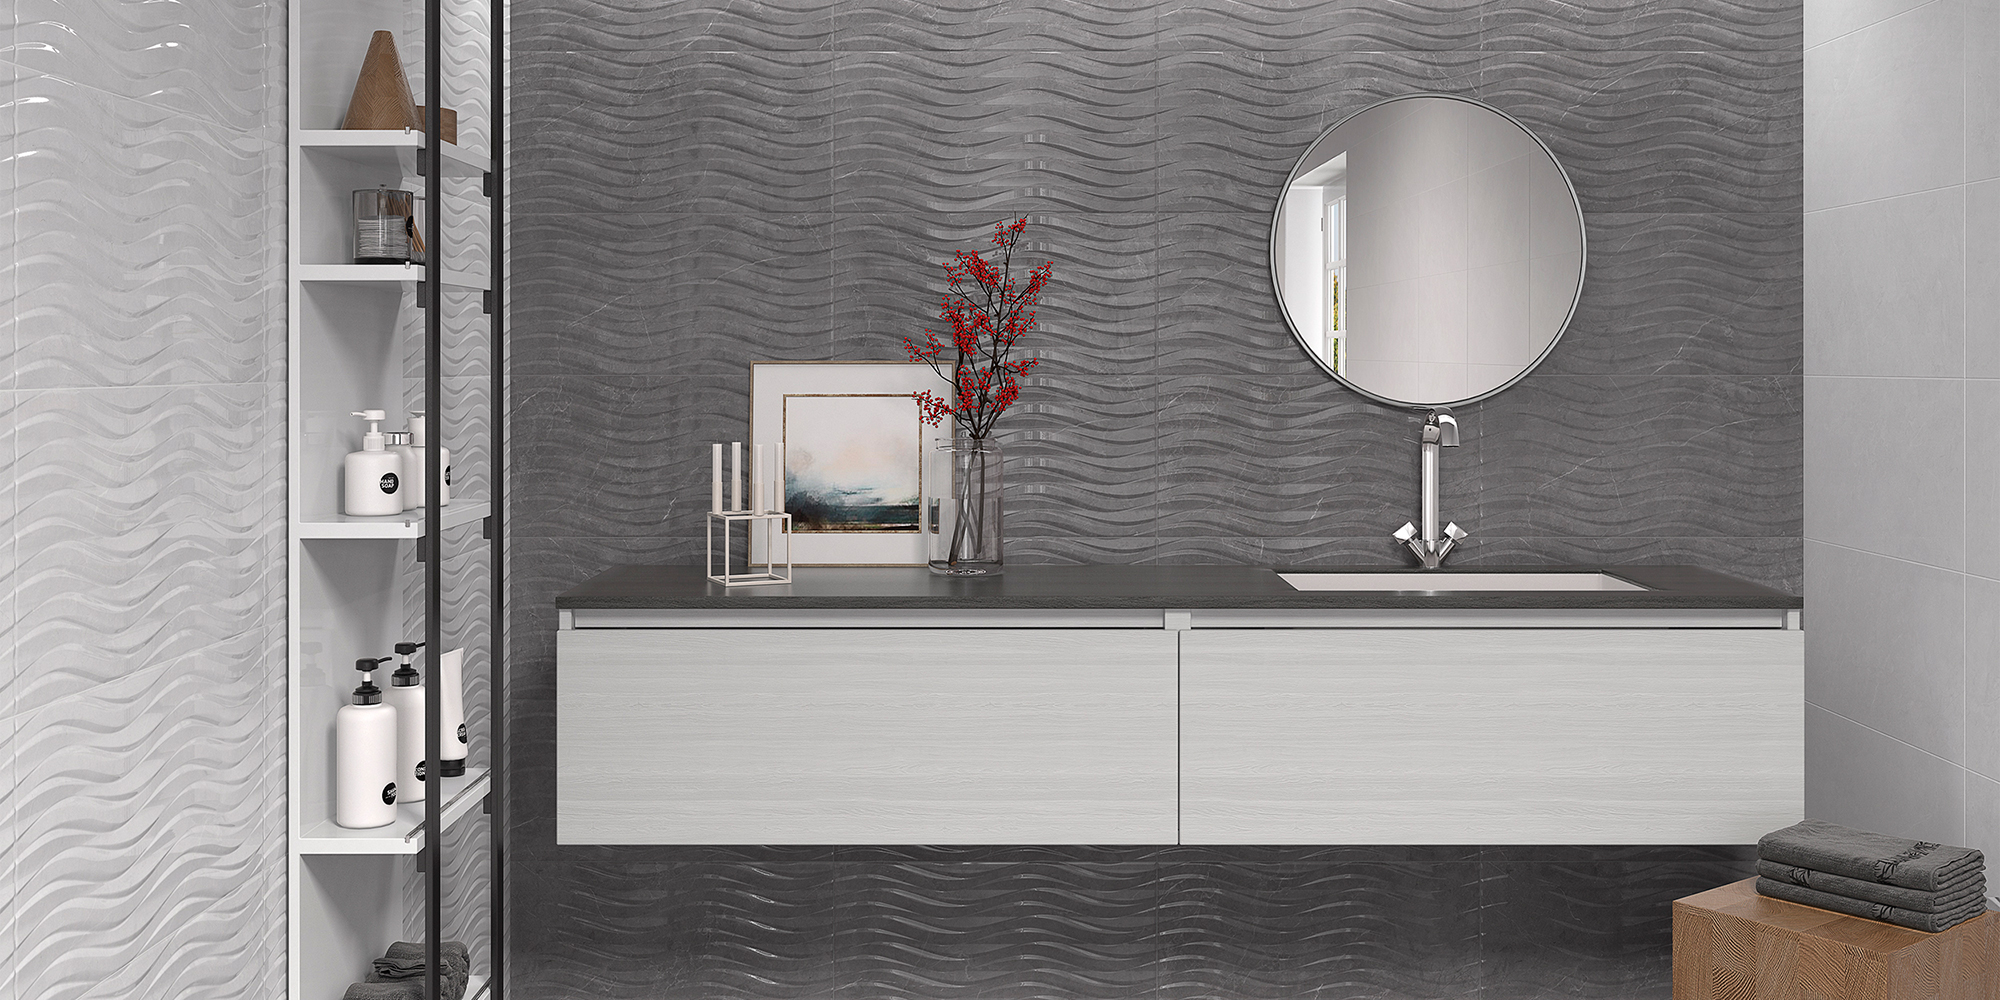 Venice 30x60 / 60x60. High gloss marble look wall and floor tiles for residential and commercial applications.